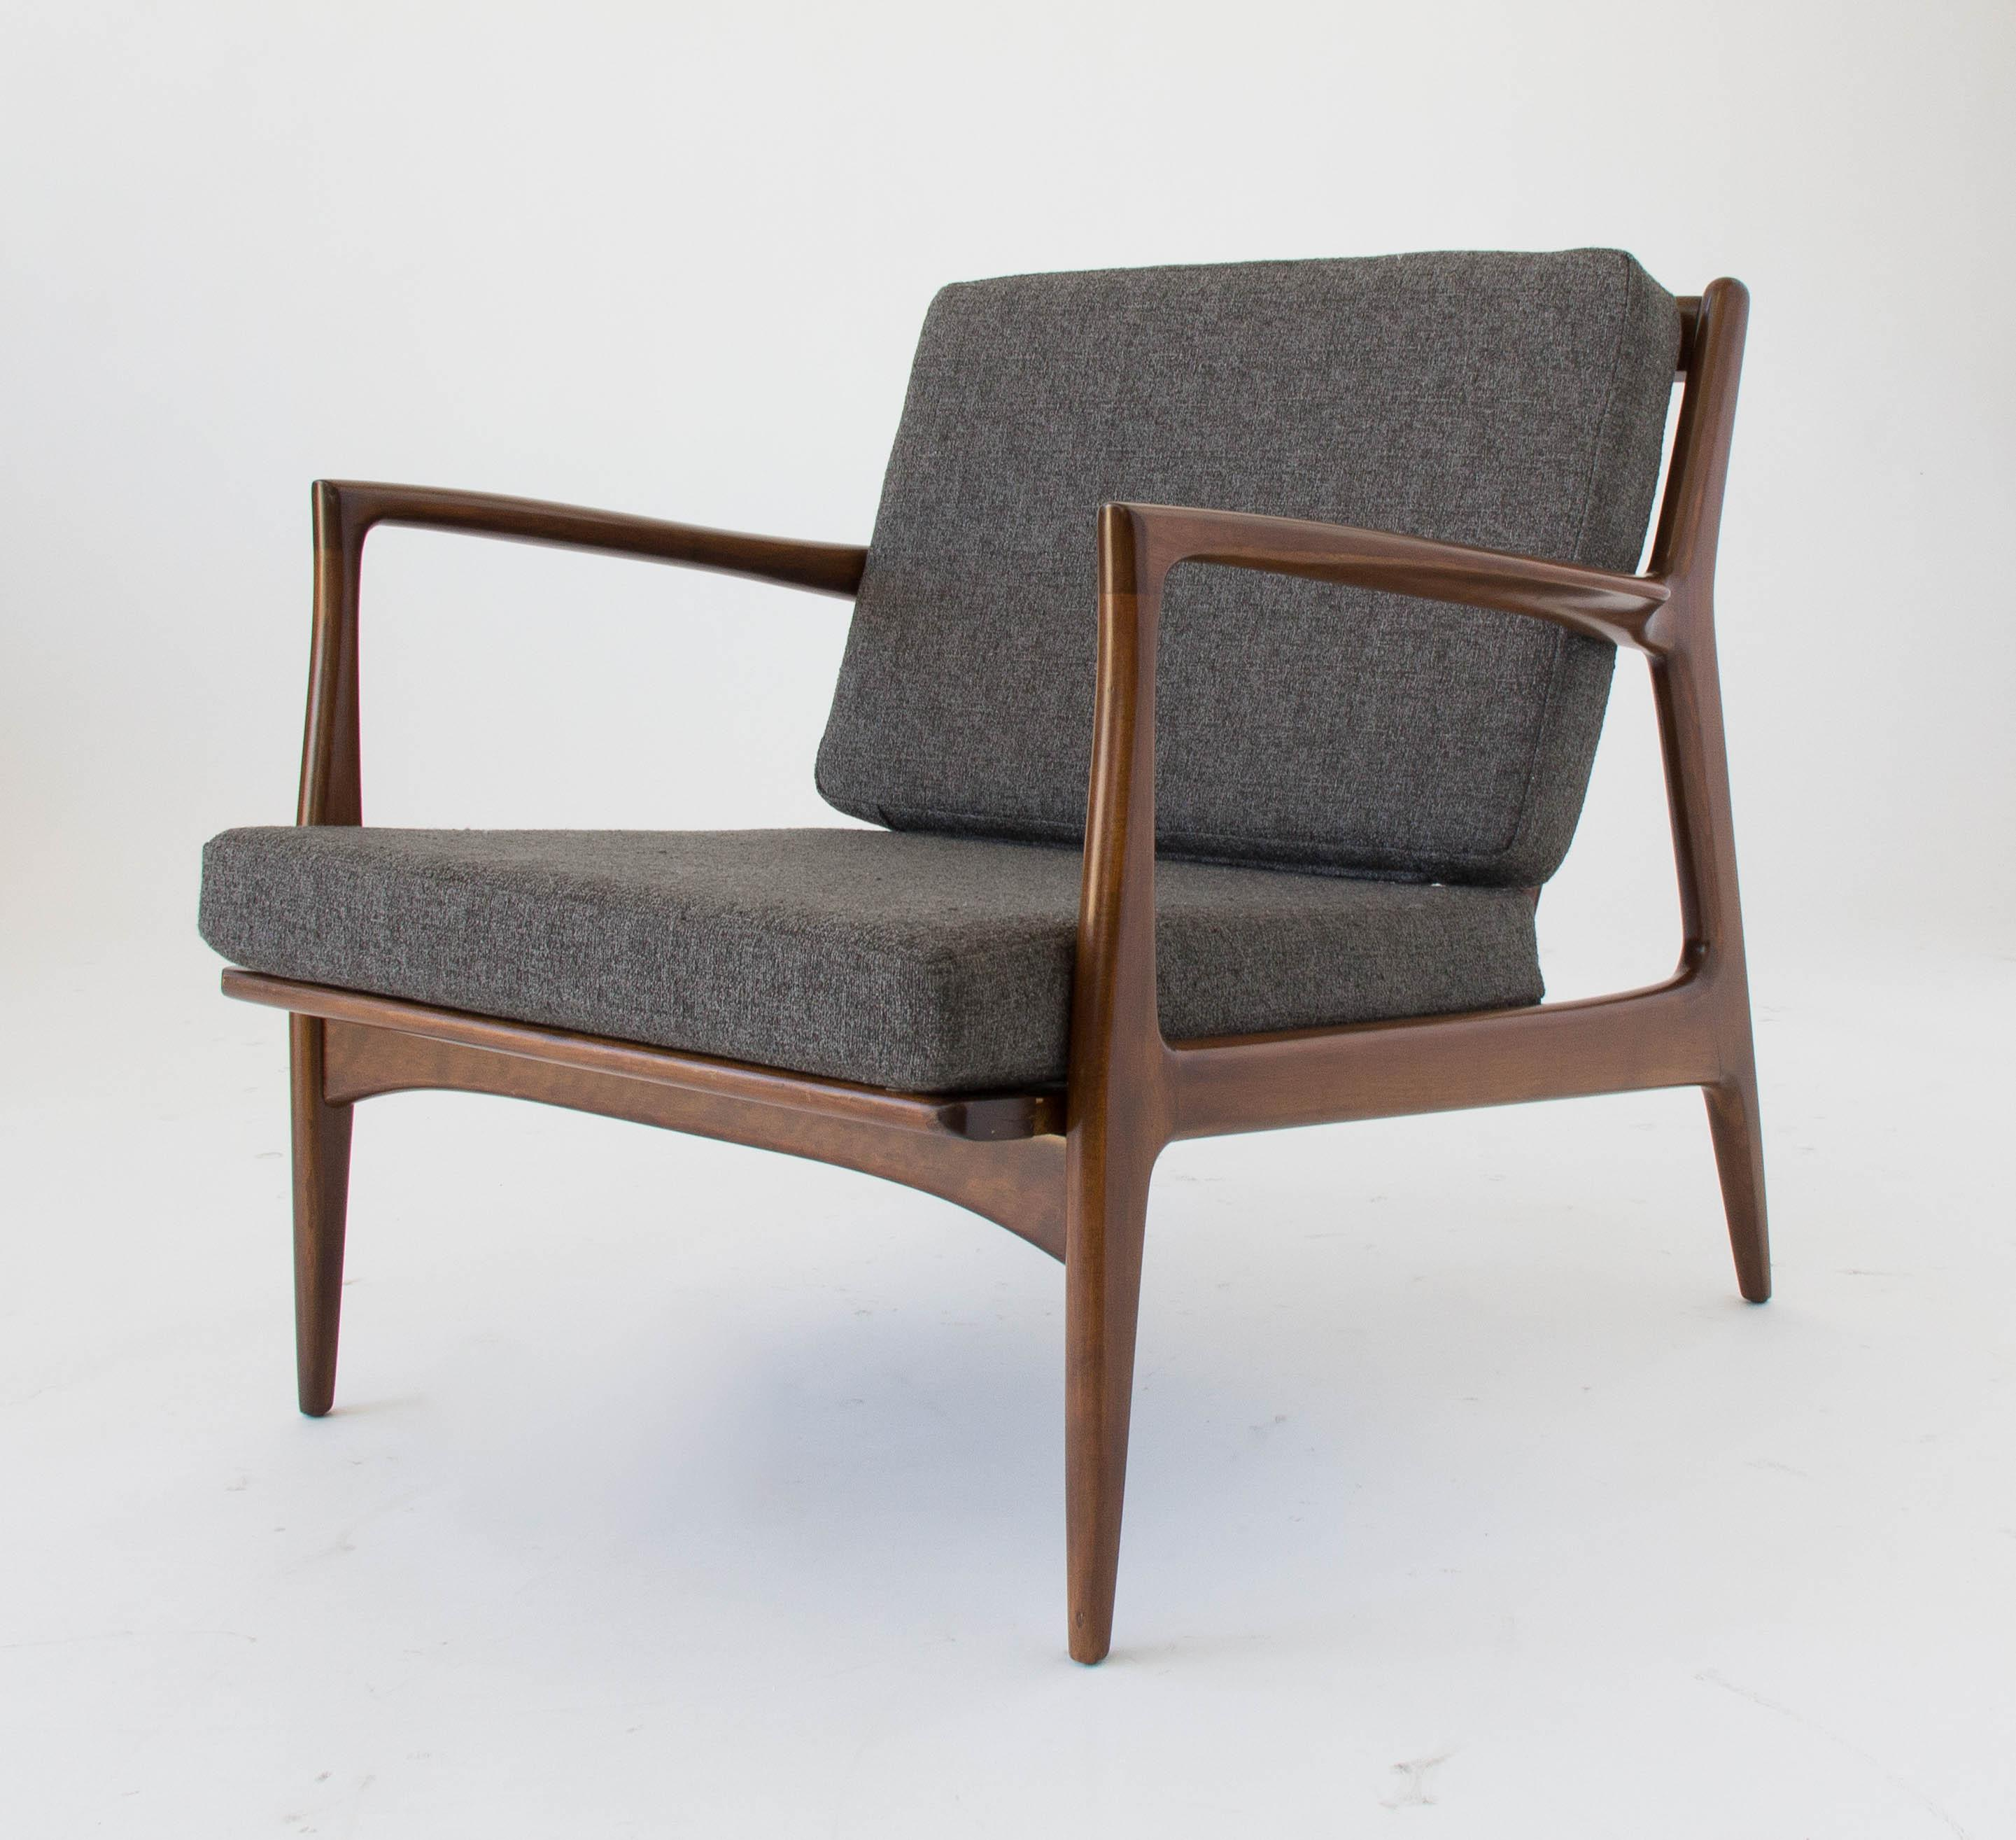 Lounge Chair By Ib Kofod Larsen For Selig   Image 2 Of 11